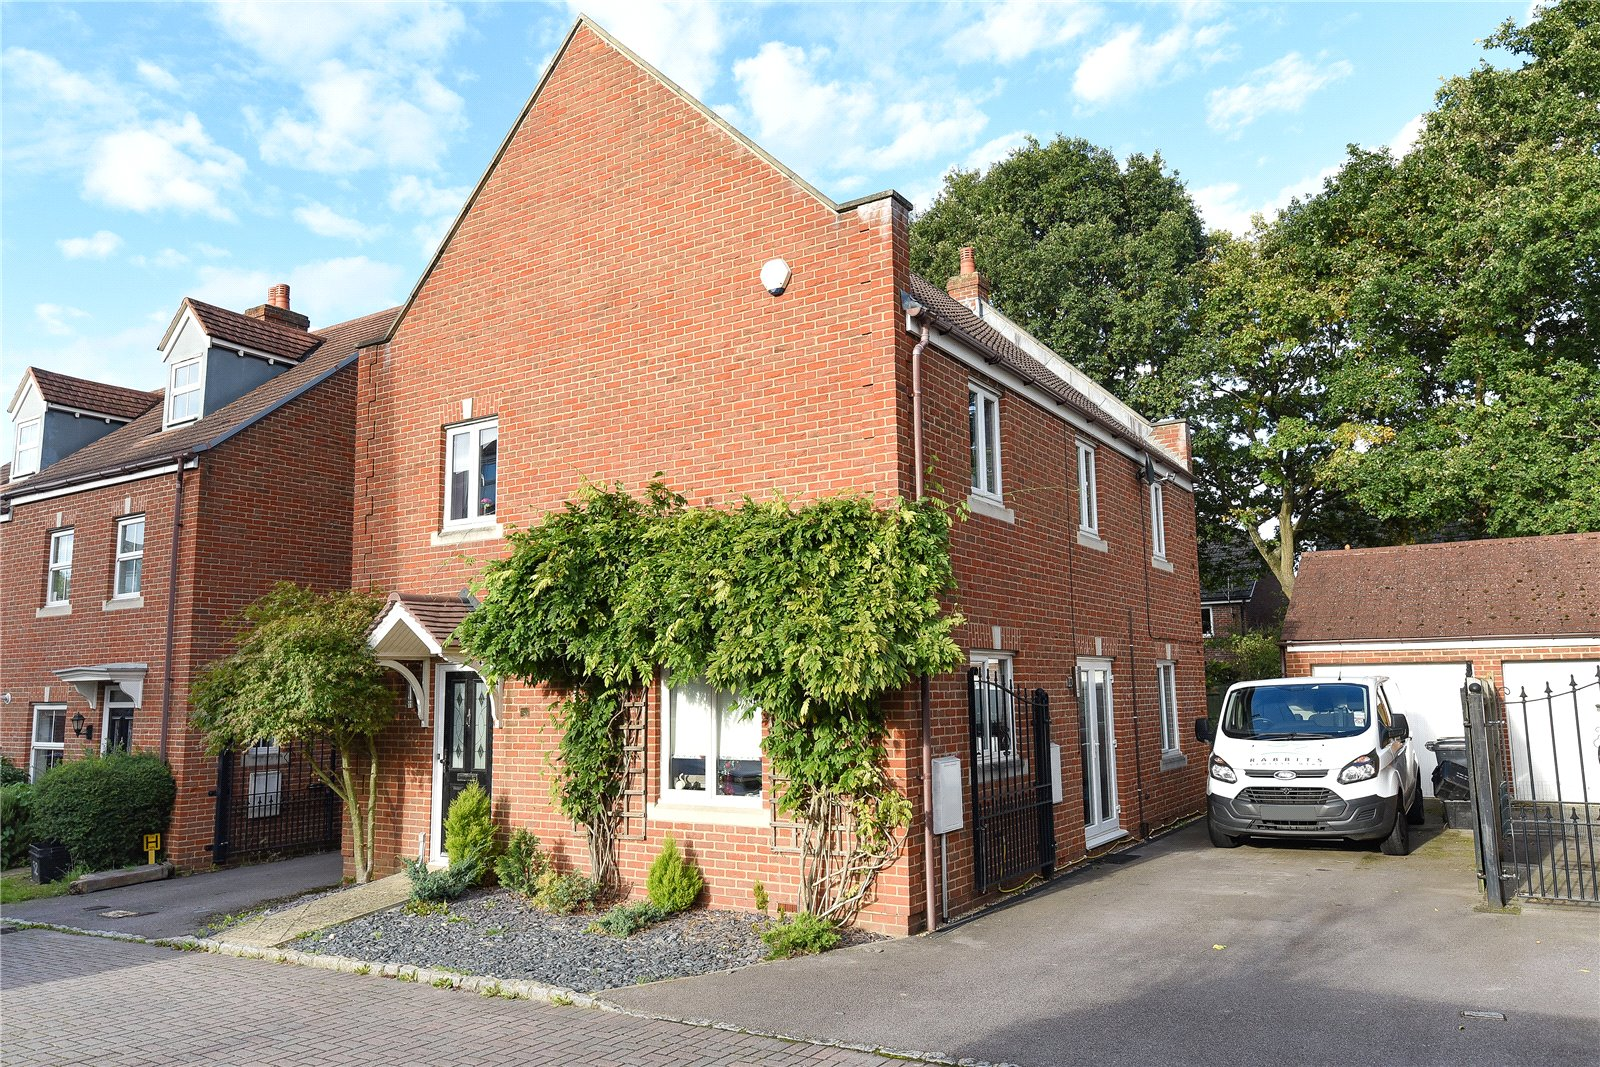 4 Bedrooms Detached House for sale in Kingfisher Grove, Three Mile Cross, Reading, Berkshire, RG7